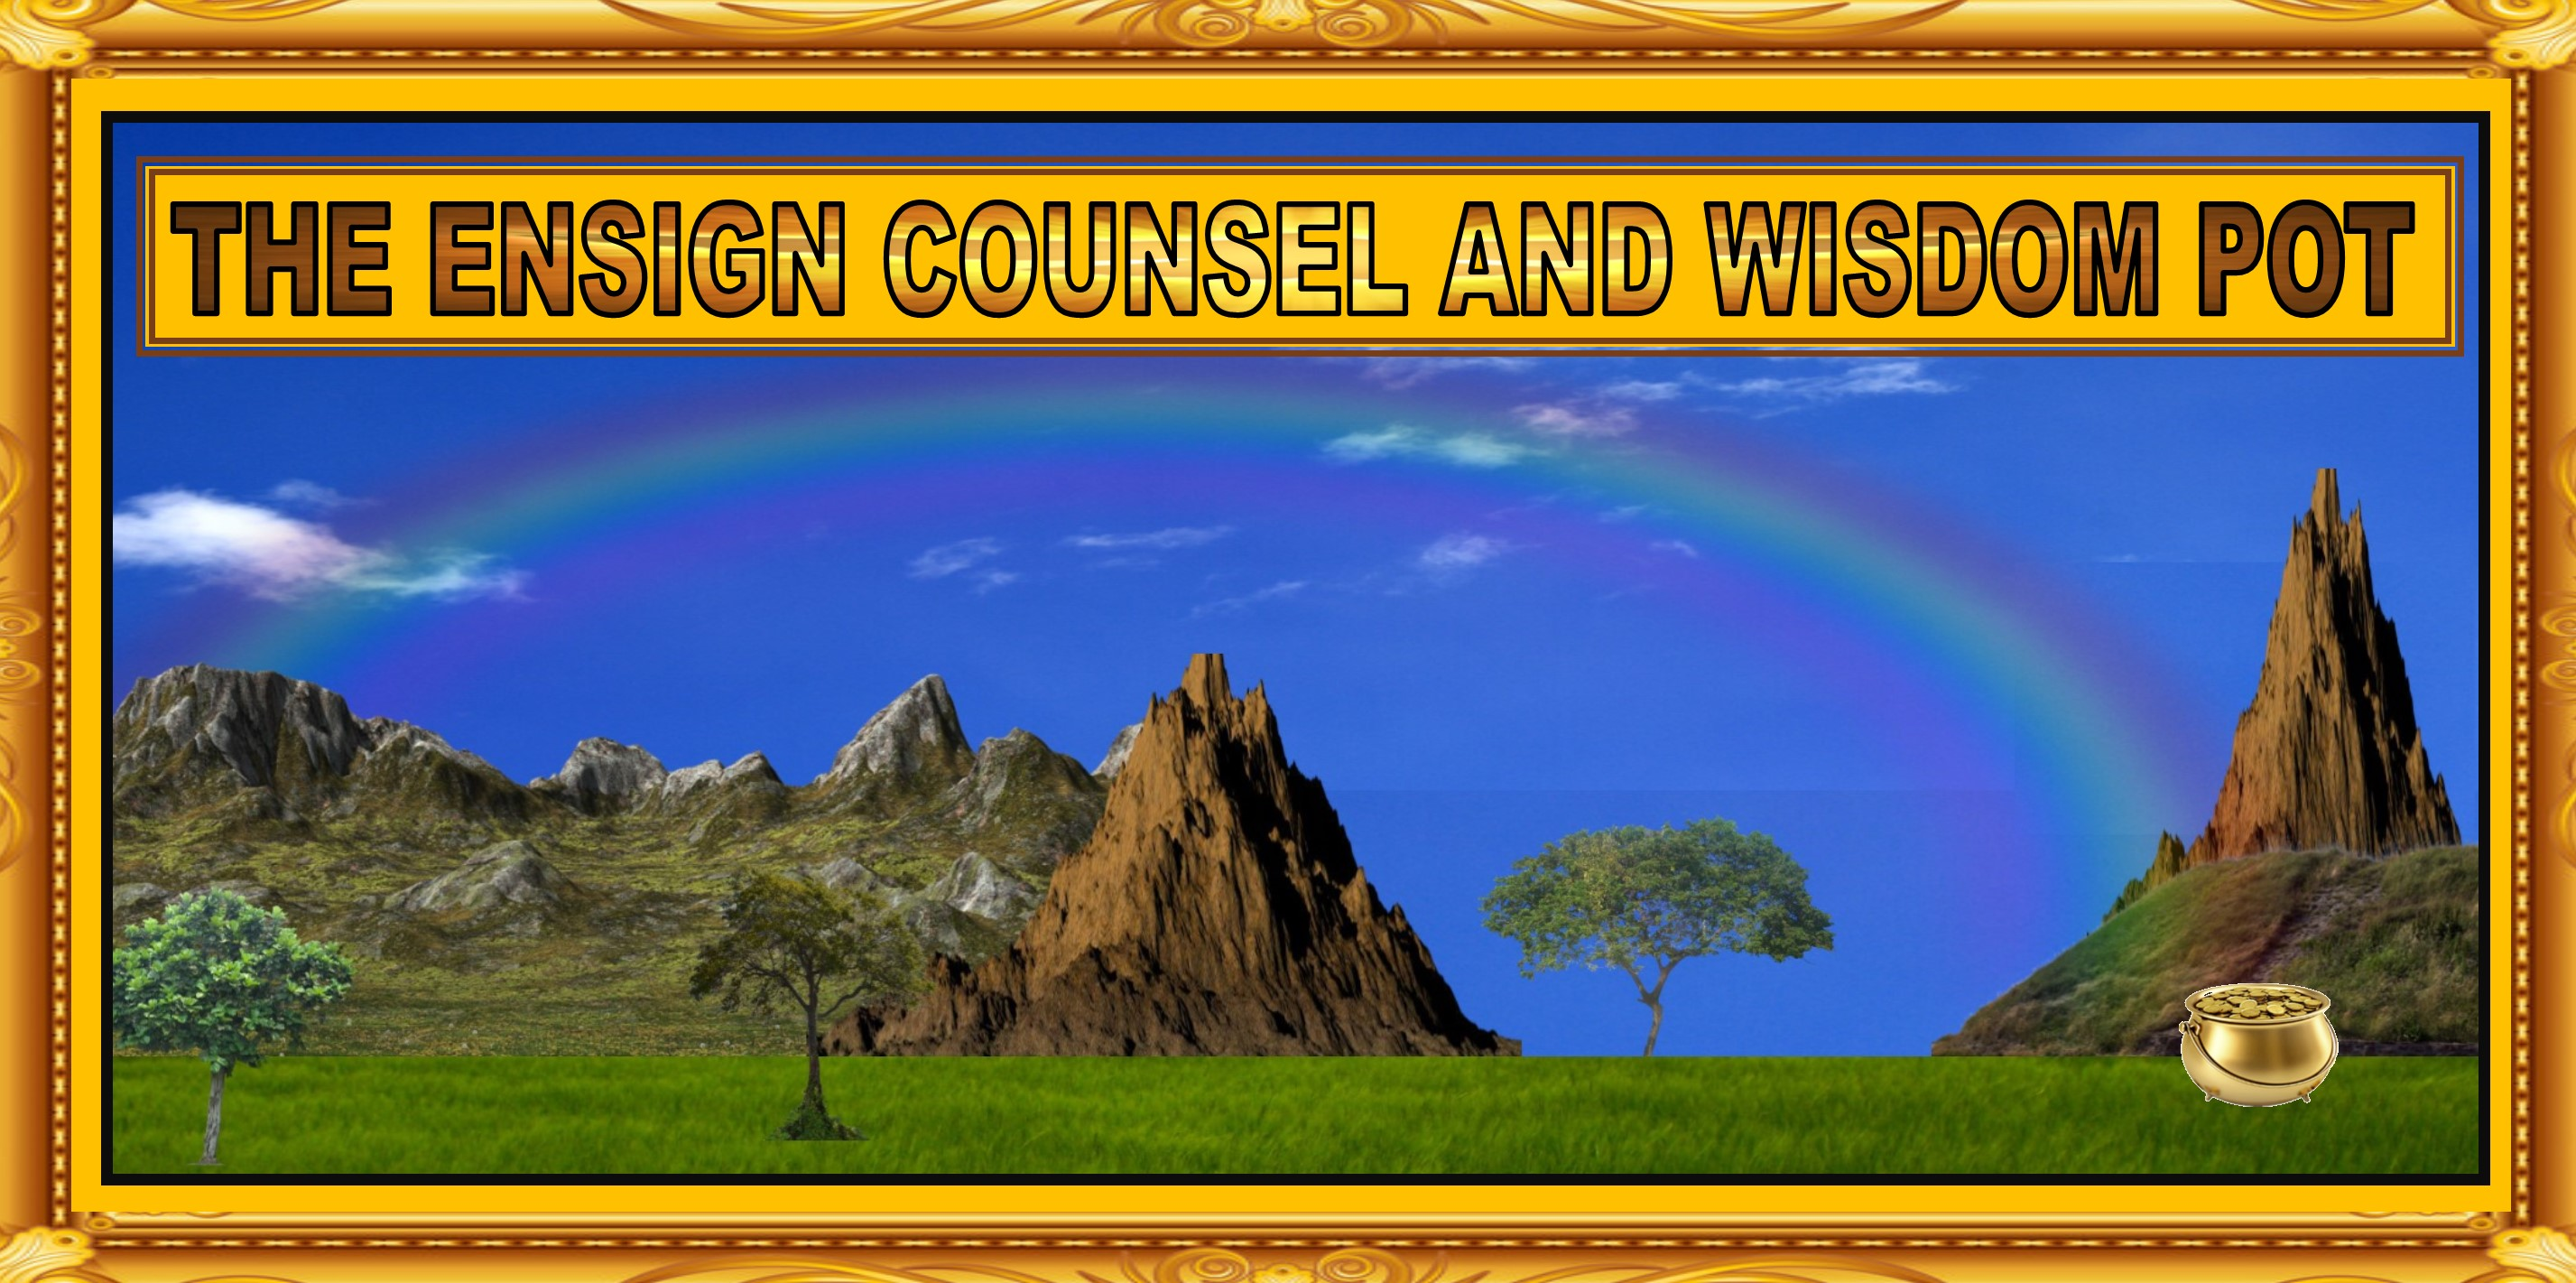 THE ENSIGN COUNSEL AND WISDOM POT WEBSITE HEADER 4-6-2021